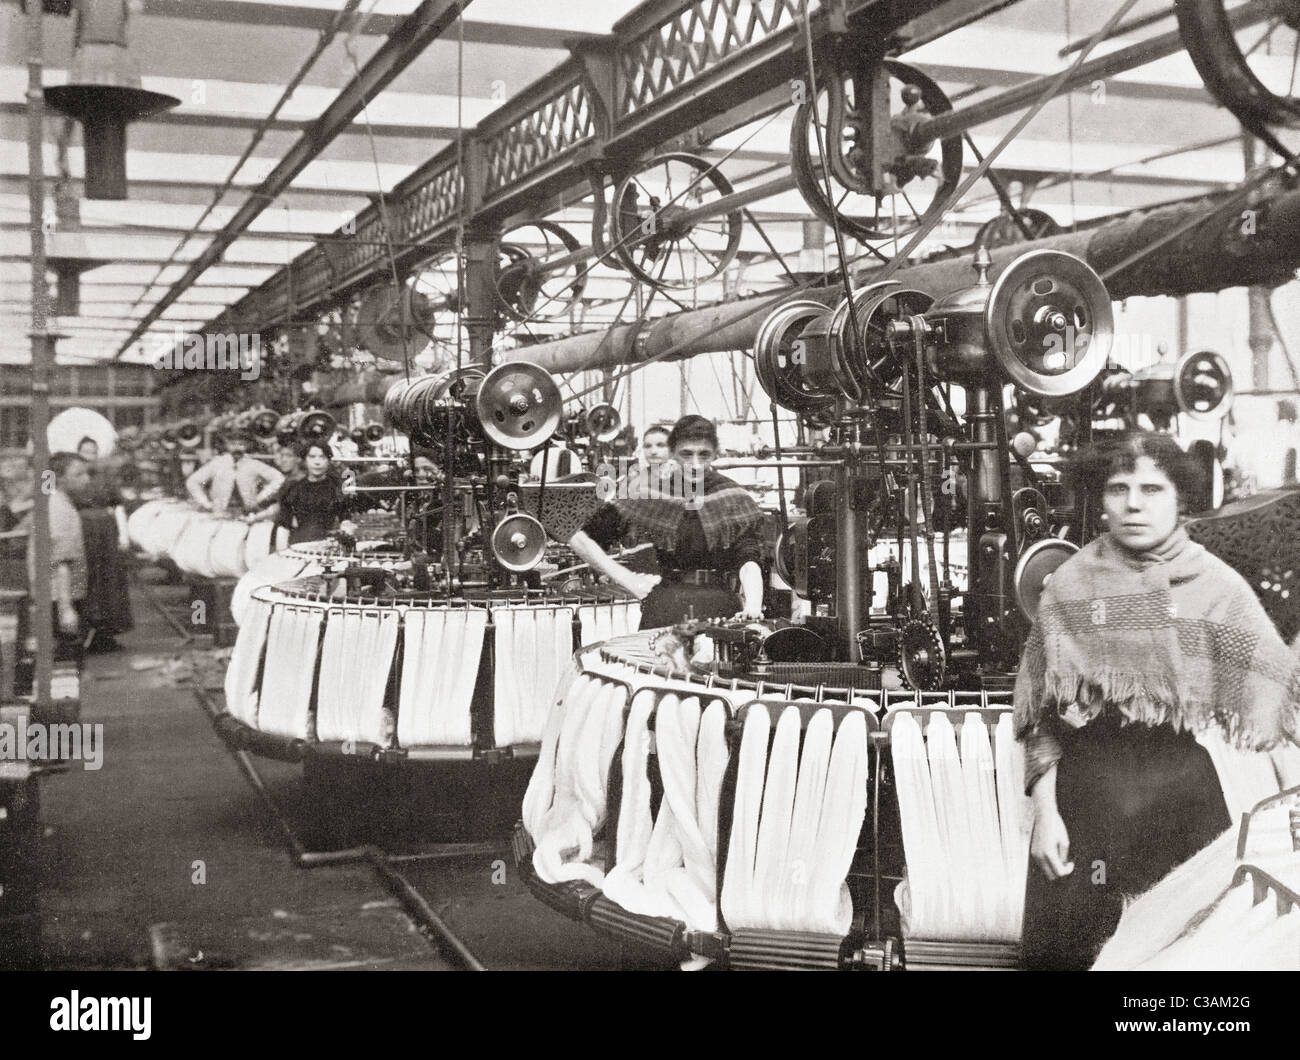 Smith's Woolcombing Works, Bradford, West Yorkshire, England. Workers in the late19th century. - Stock Image